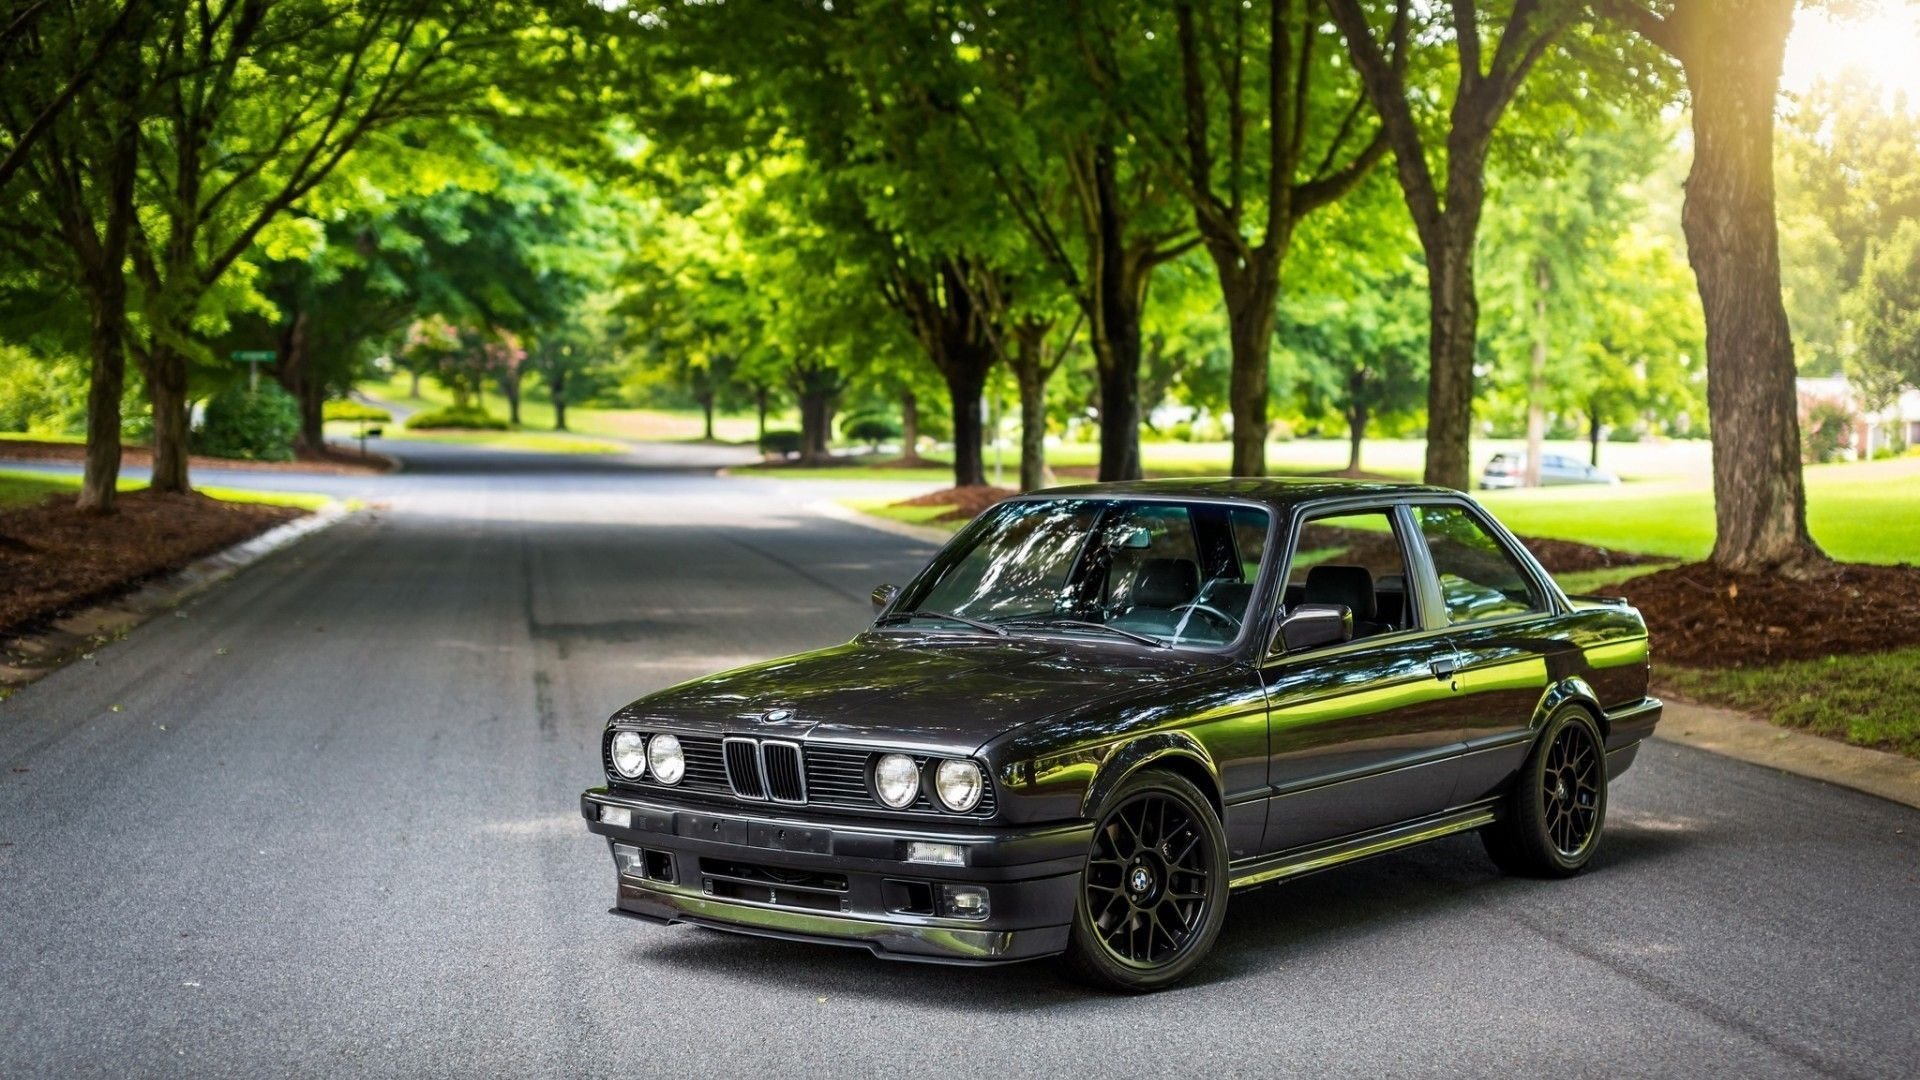 1920x1080 BMW E30 Wallpaper 09  768x432